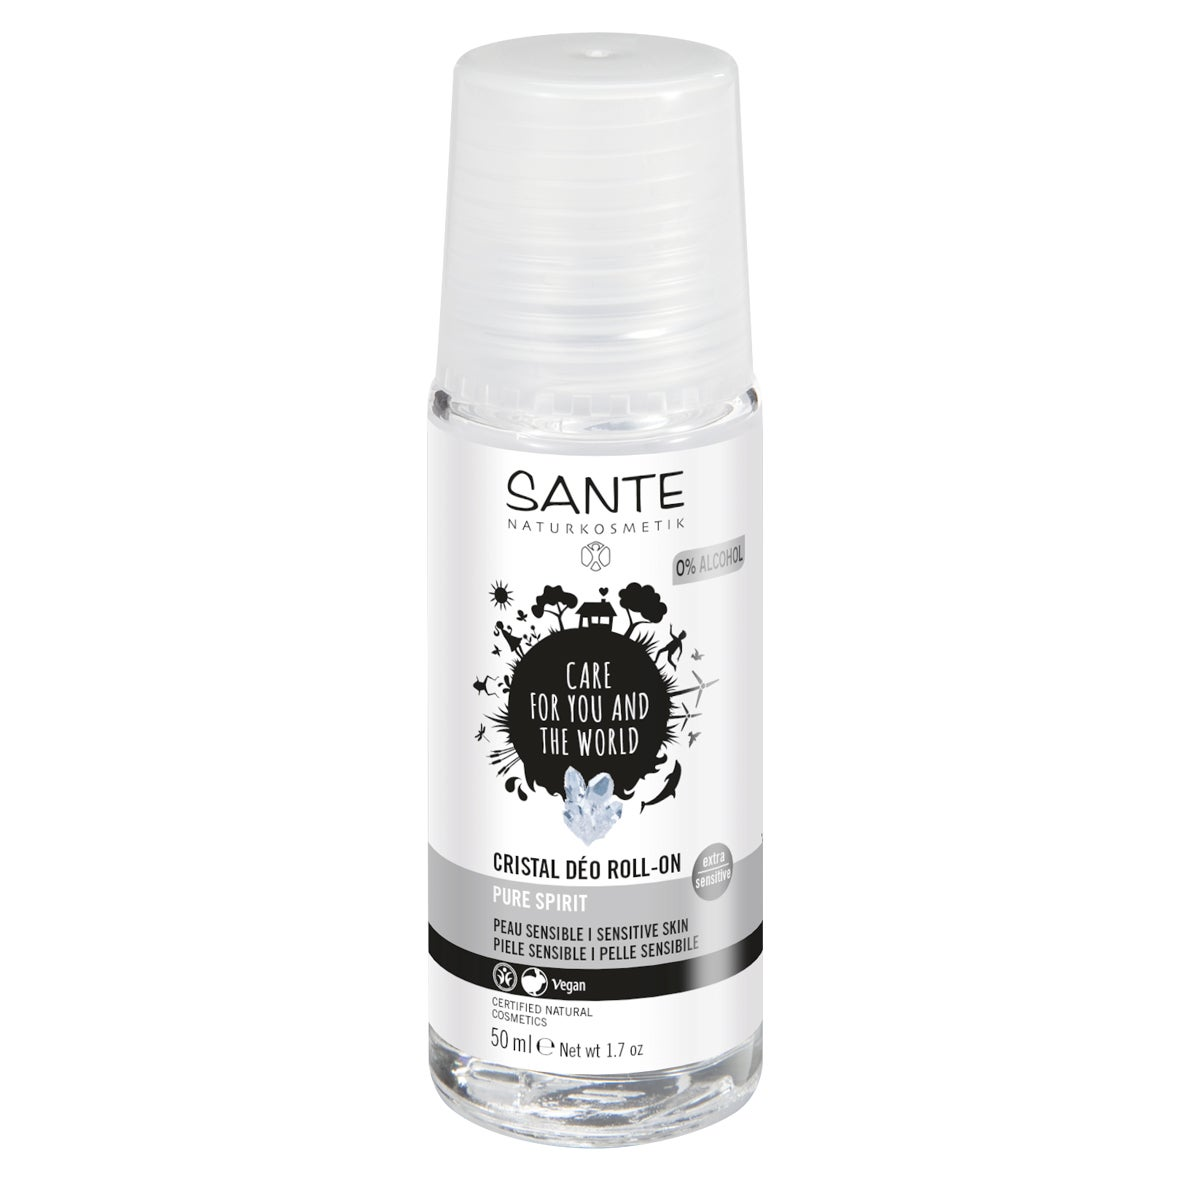 Sante Crystal Roll-on Deodorant - Pure Spirit